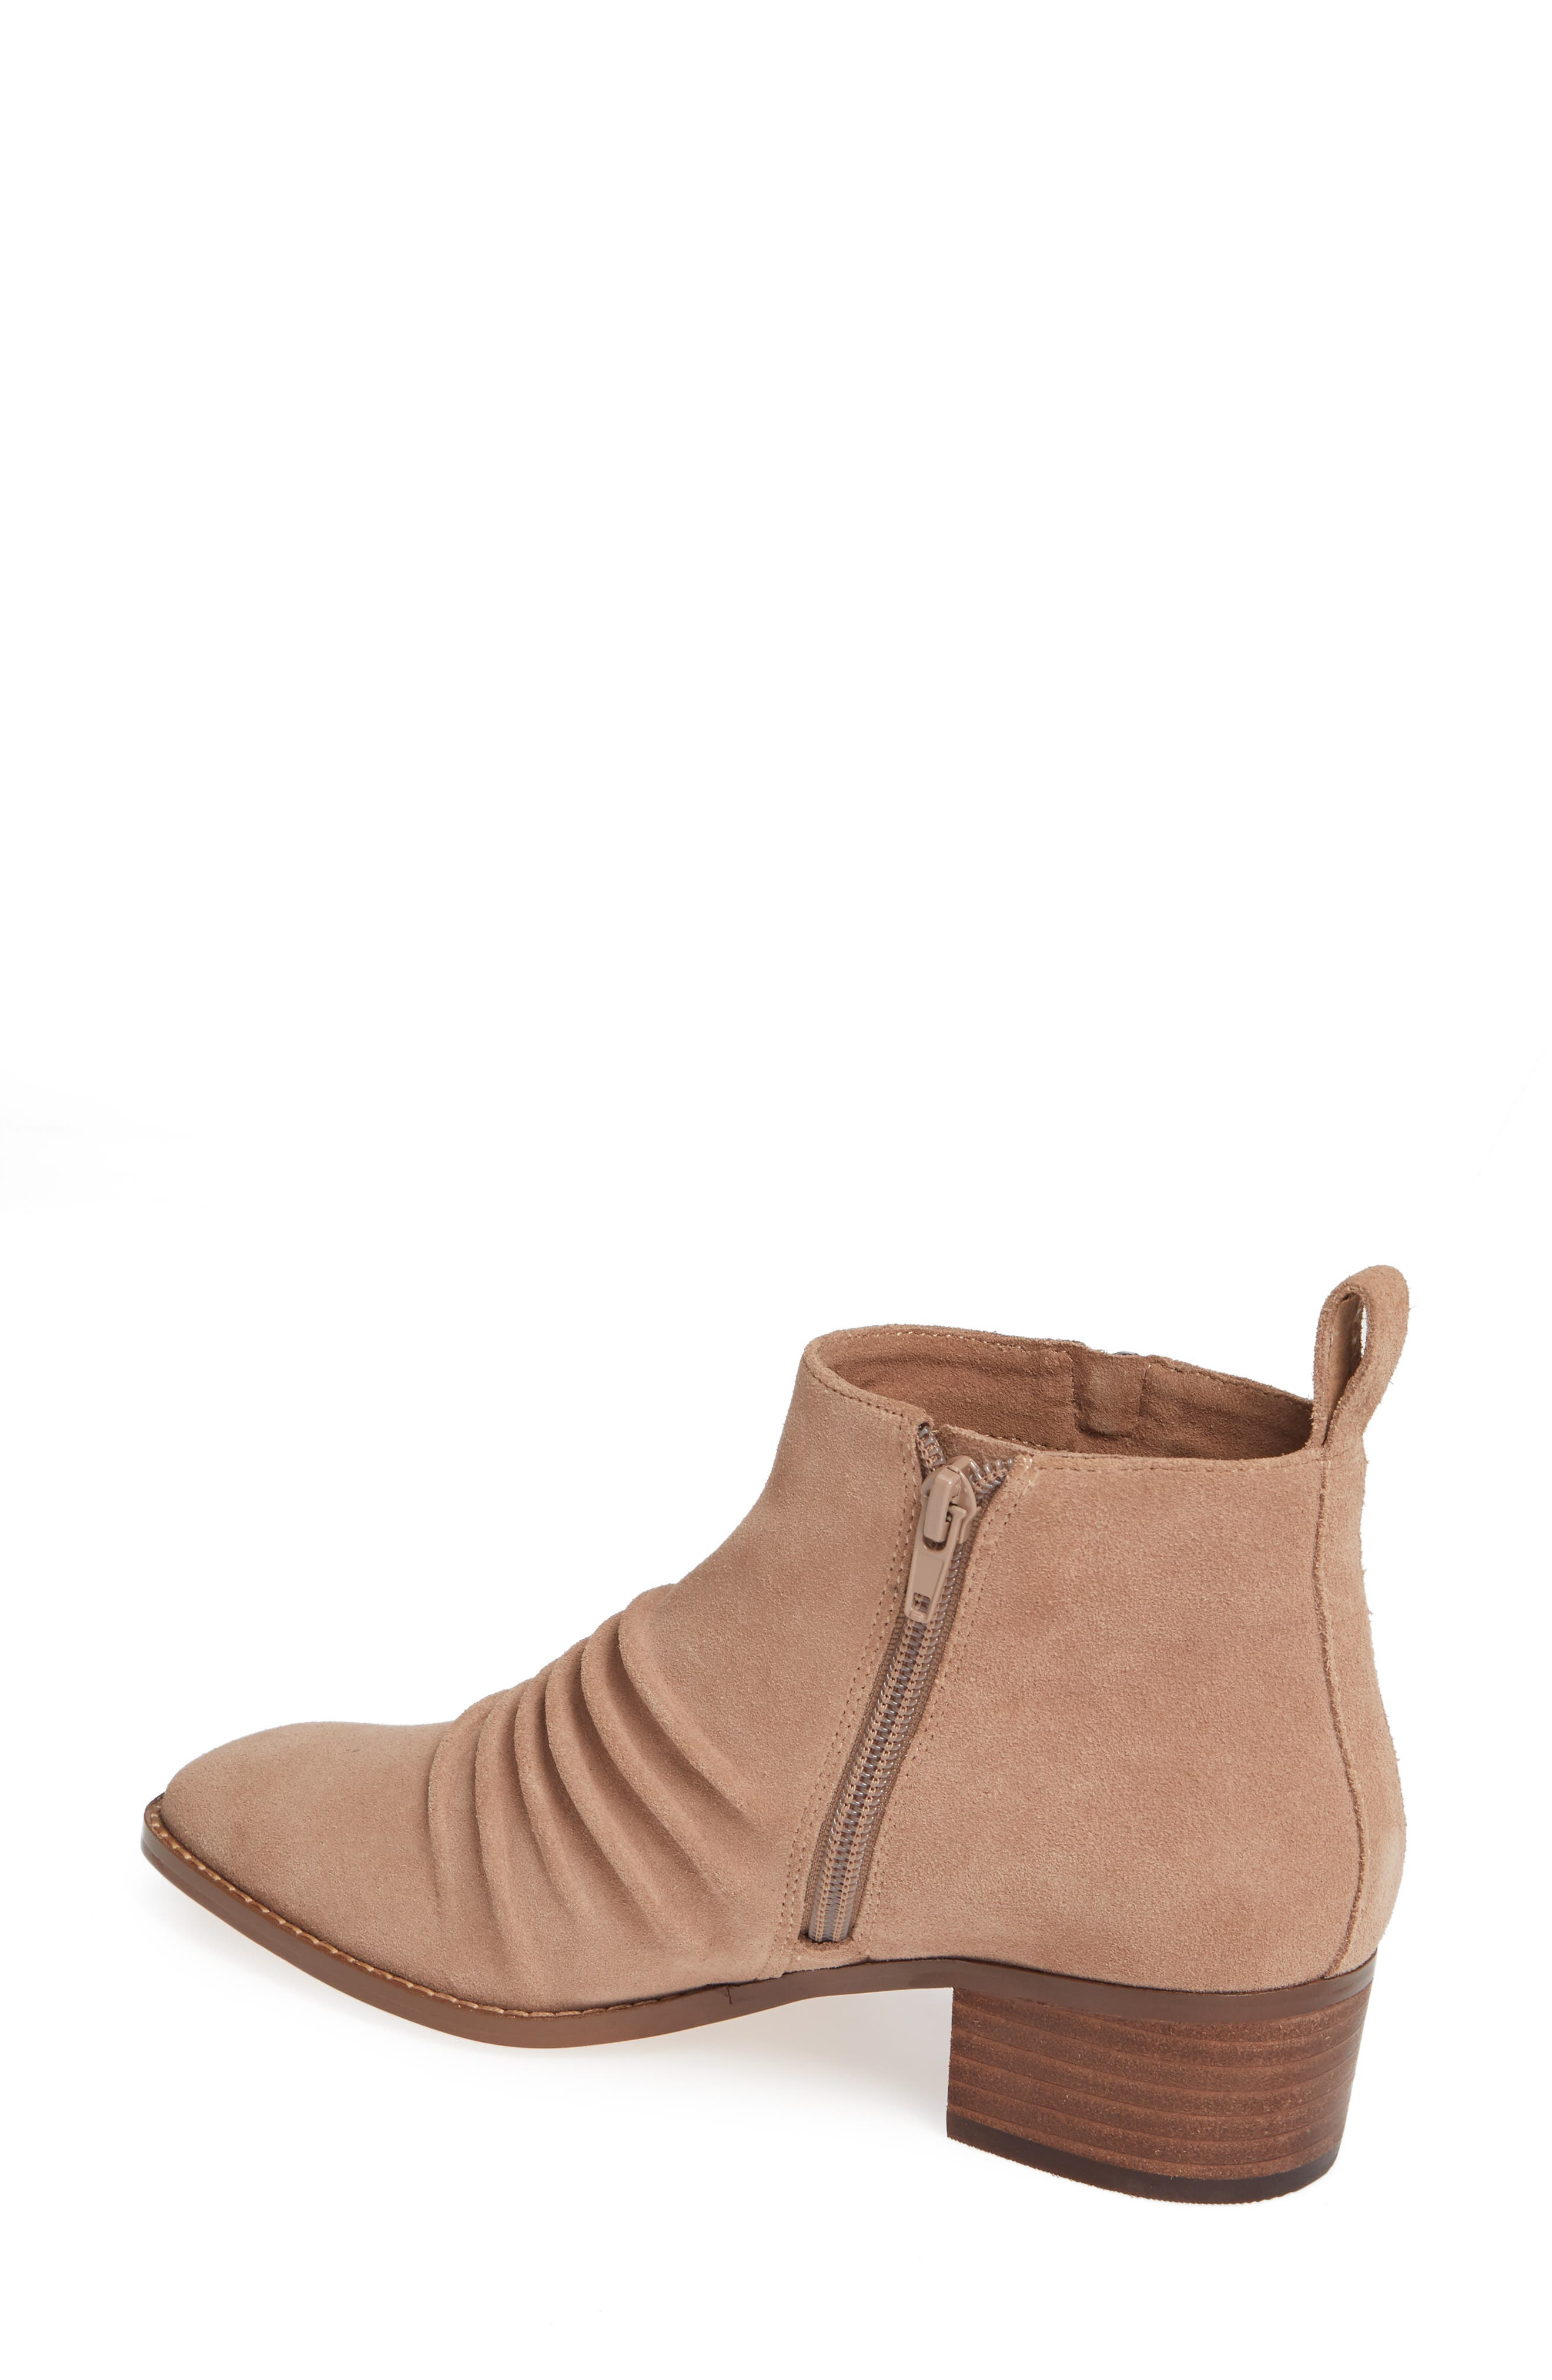 e6a545fbc Women's Sole Society Booties & Ankle Boots | Nordstrom